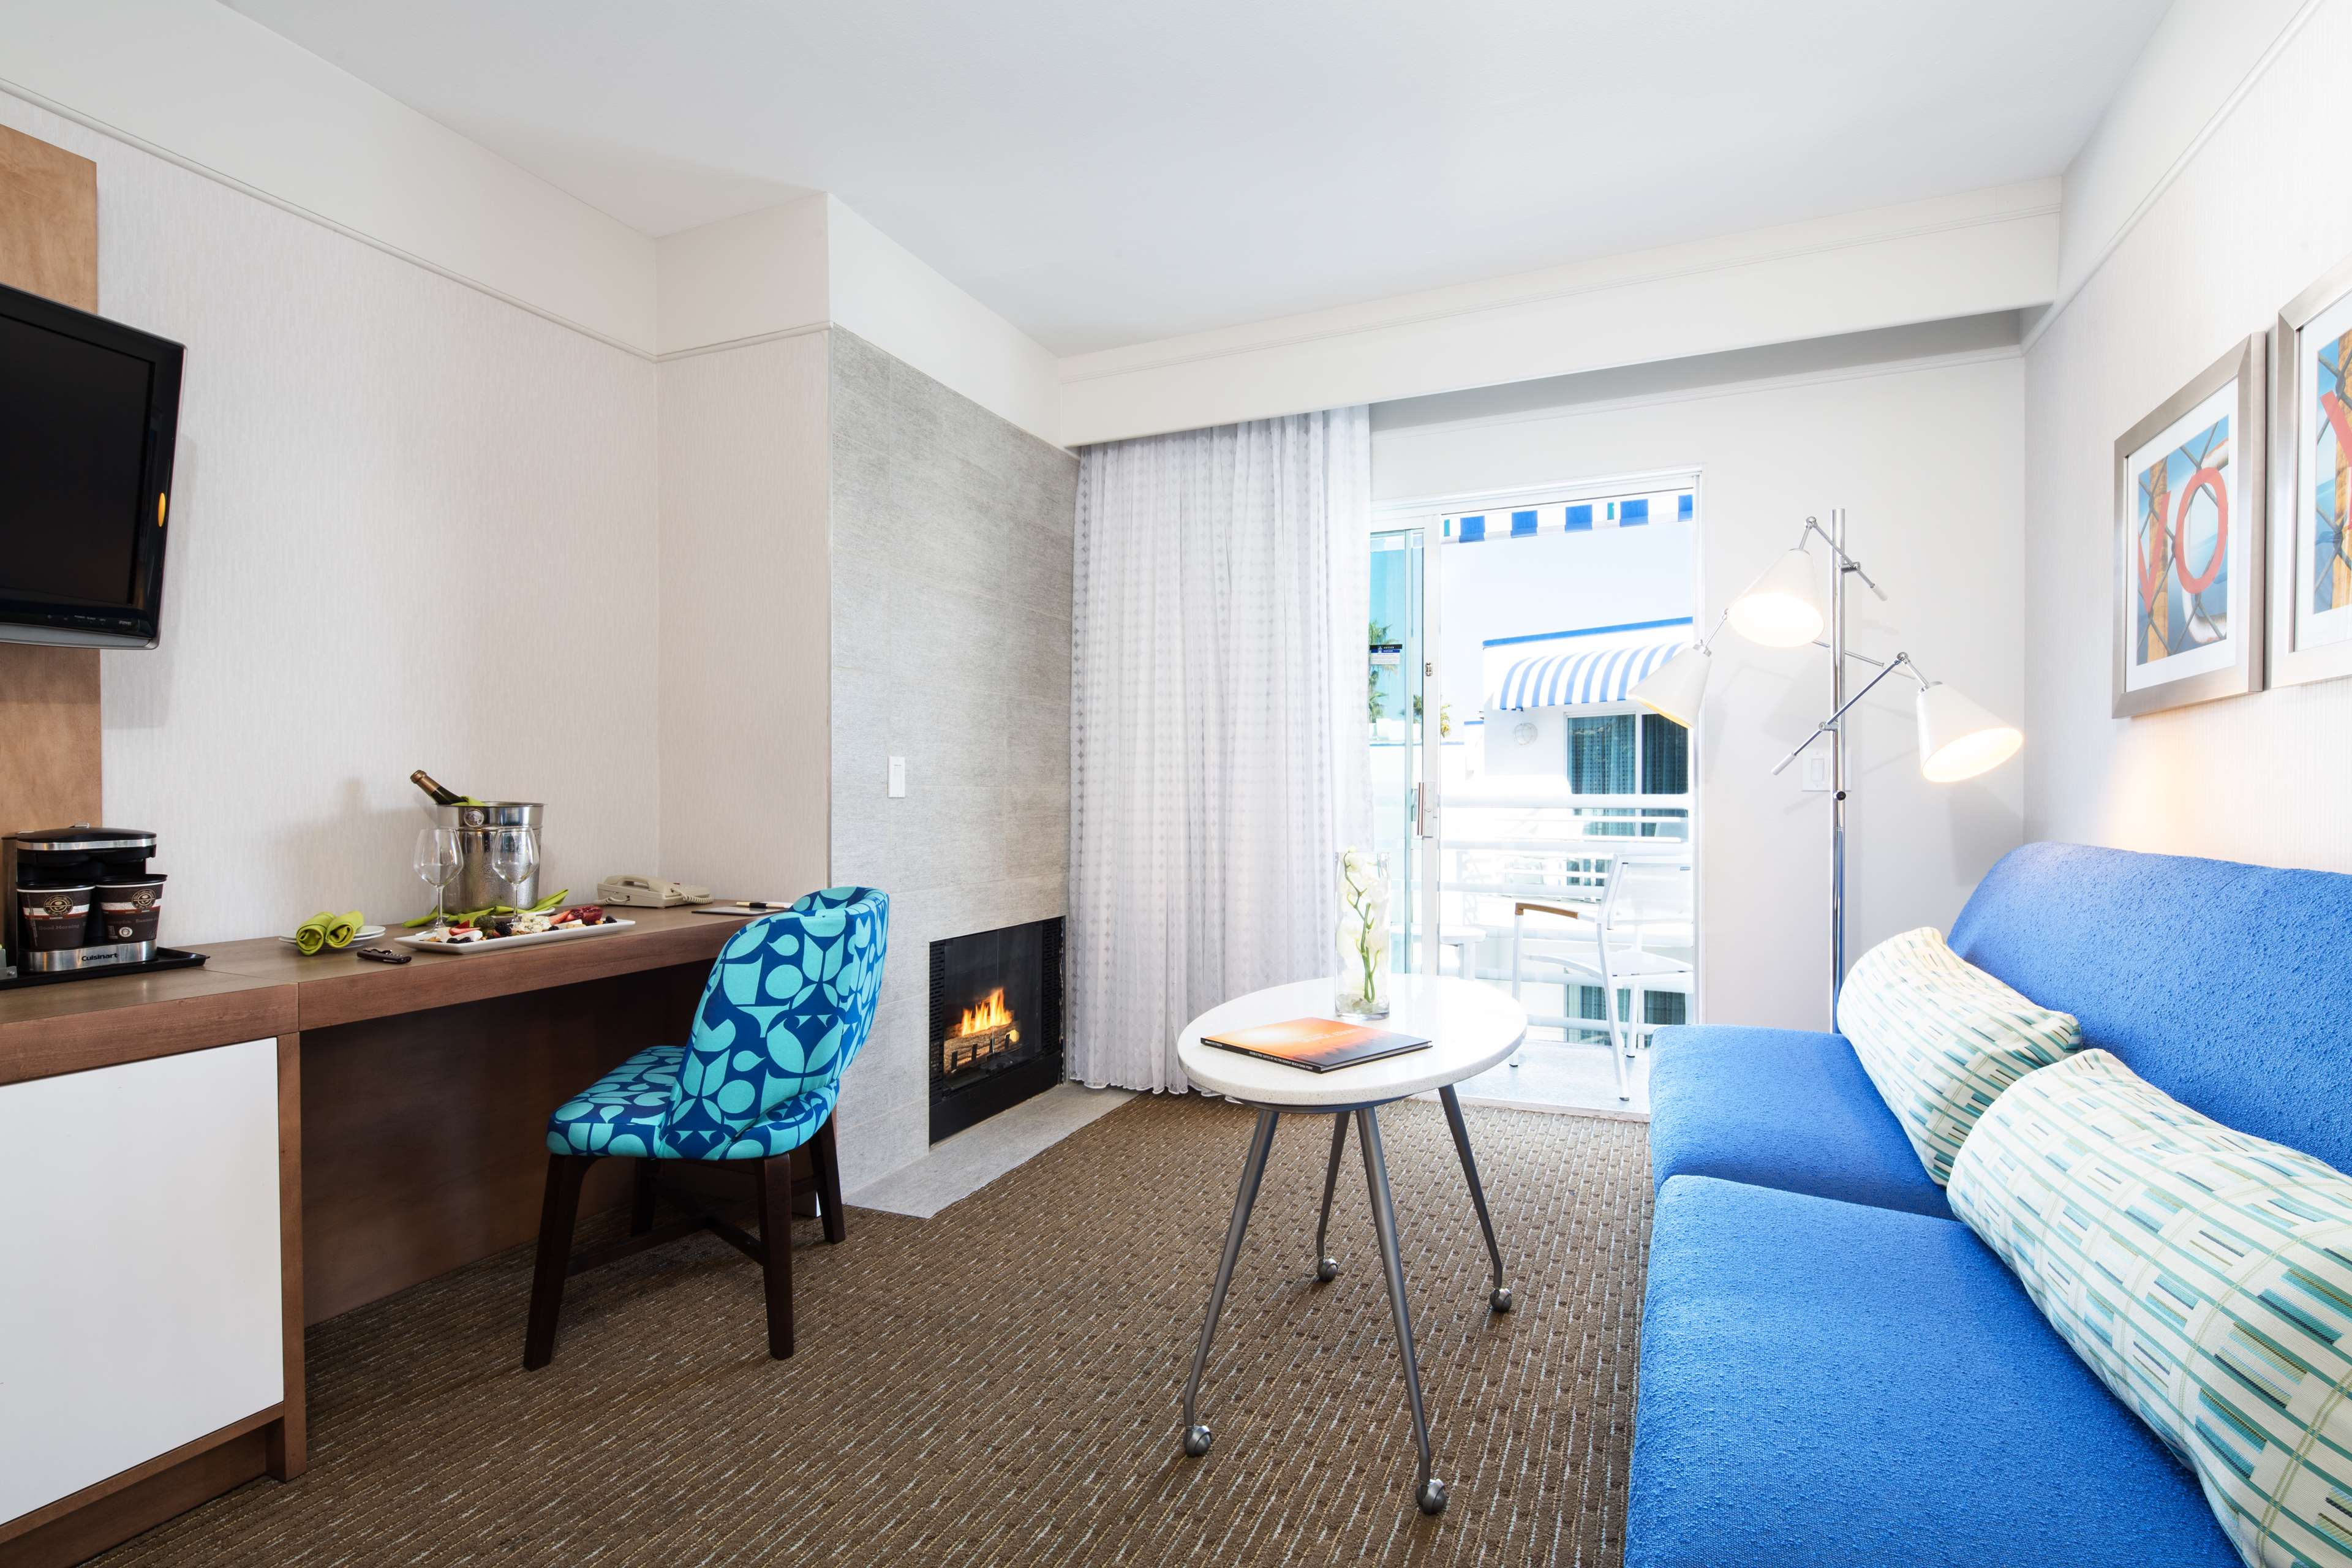 DoubleTree Suites by Hilton Hotel Doheny Beach - Dana Point image 11